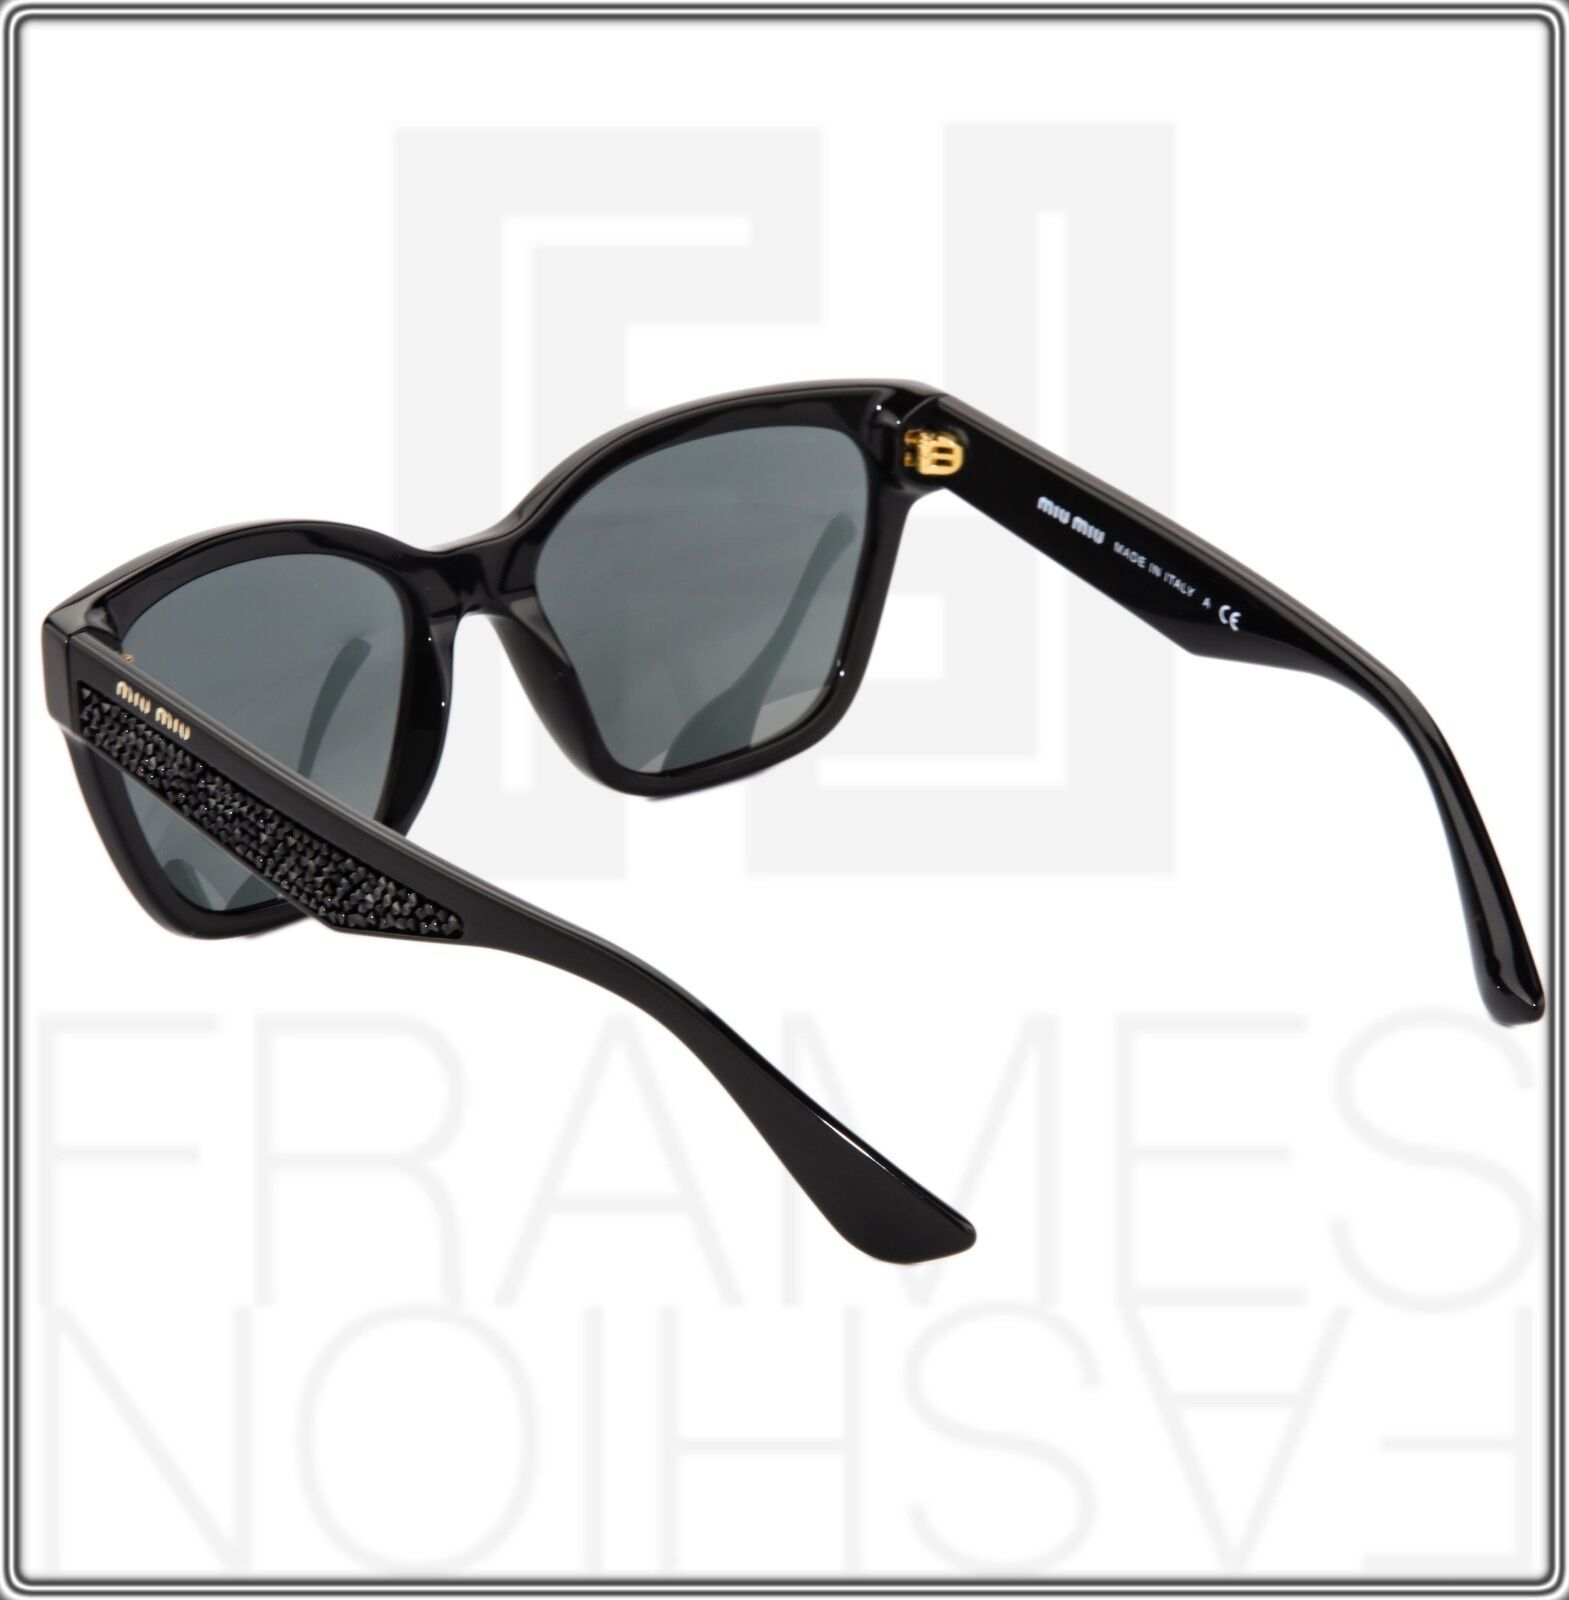 MIU MIU PAVE EVOLUTION MU 06R Square Black Rock 1AB-1A1 Sunglasses MU06RS Women image 5